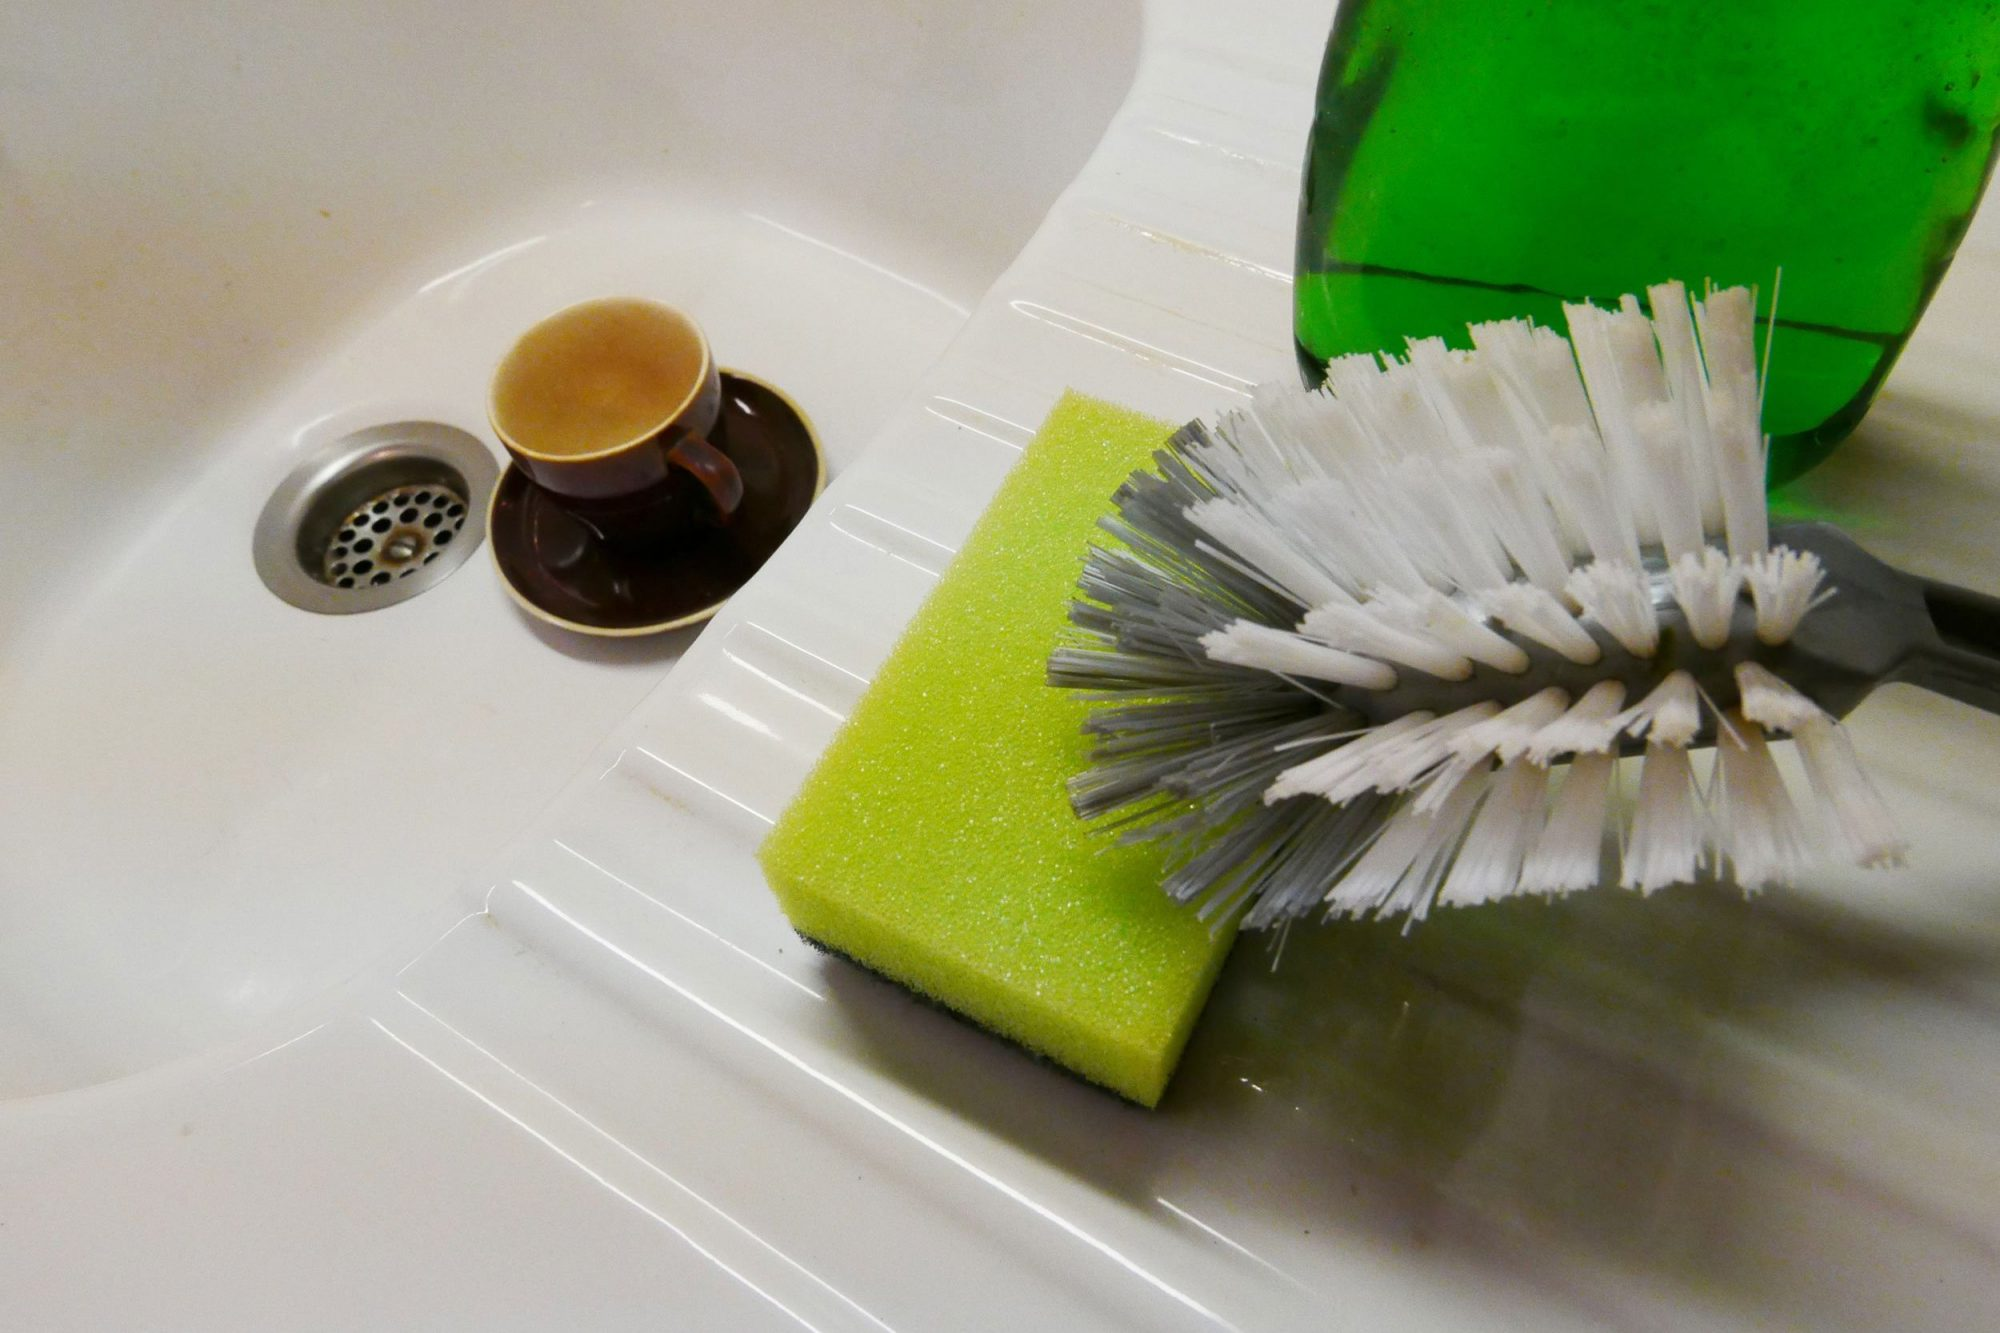 EC: When Should You Throw Out Your Sponge?